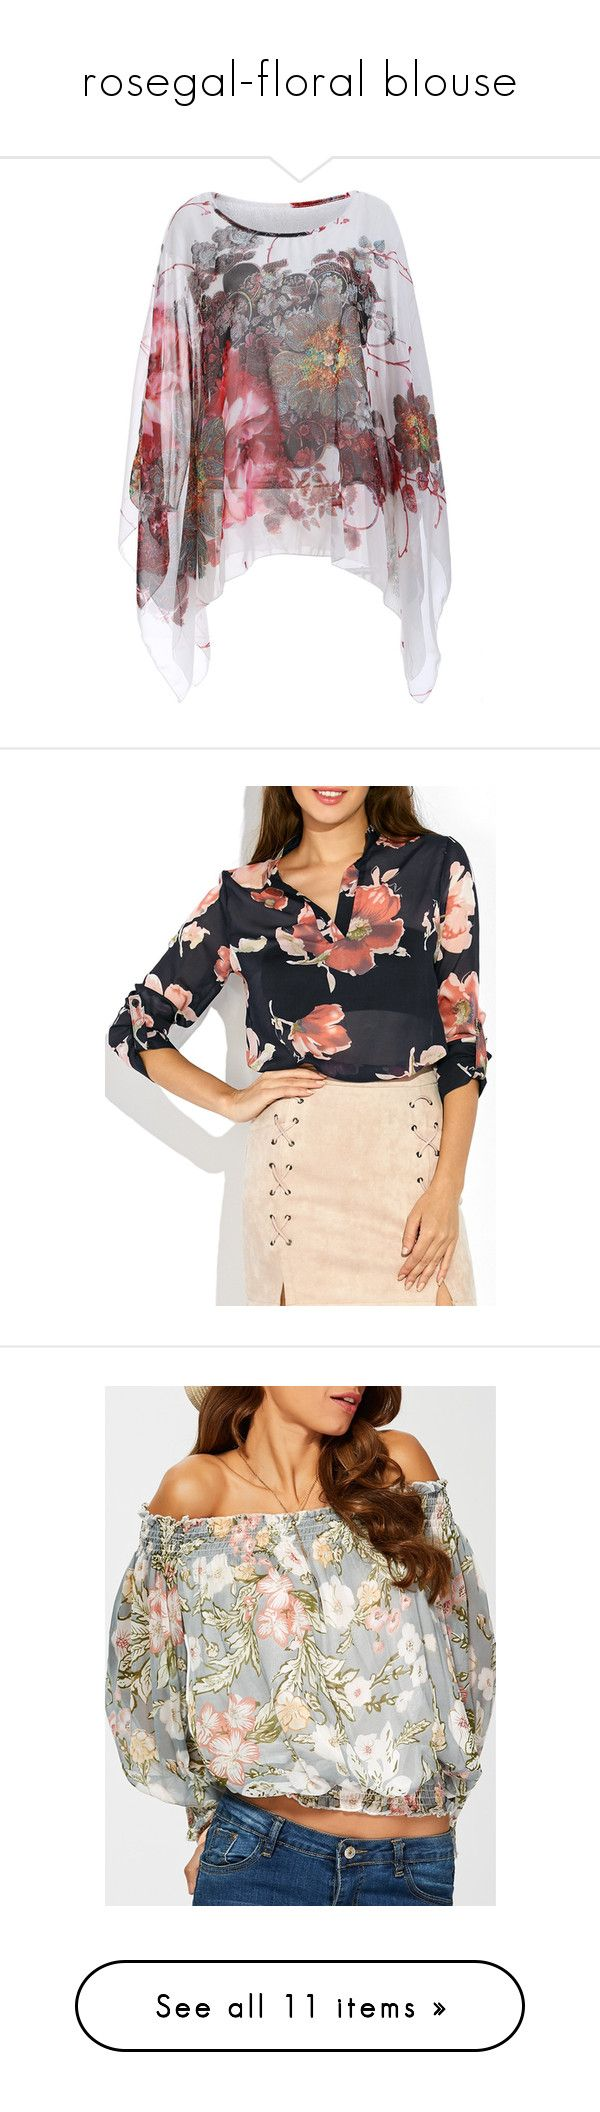 """""""rosegal-floral blouse"""" by fshionme ❤ liked on Polyvore featuring tops, blouses, bat sleeve tops, batwing sleeve blouse, chiffon blouse, batwing sleeve tops, chiffon tops, flower print tops, floral print tops and floral blouse"""